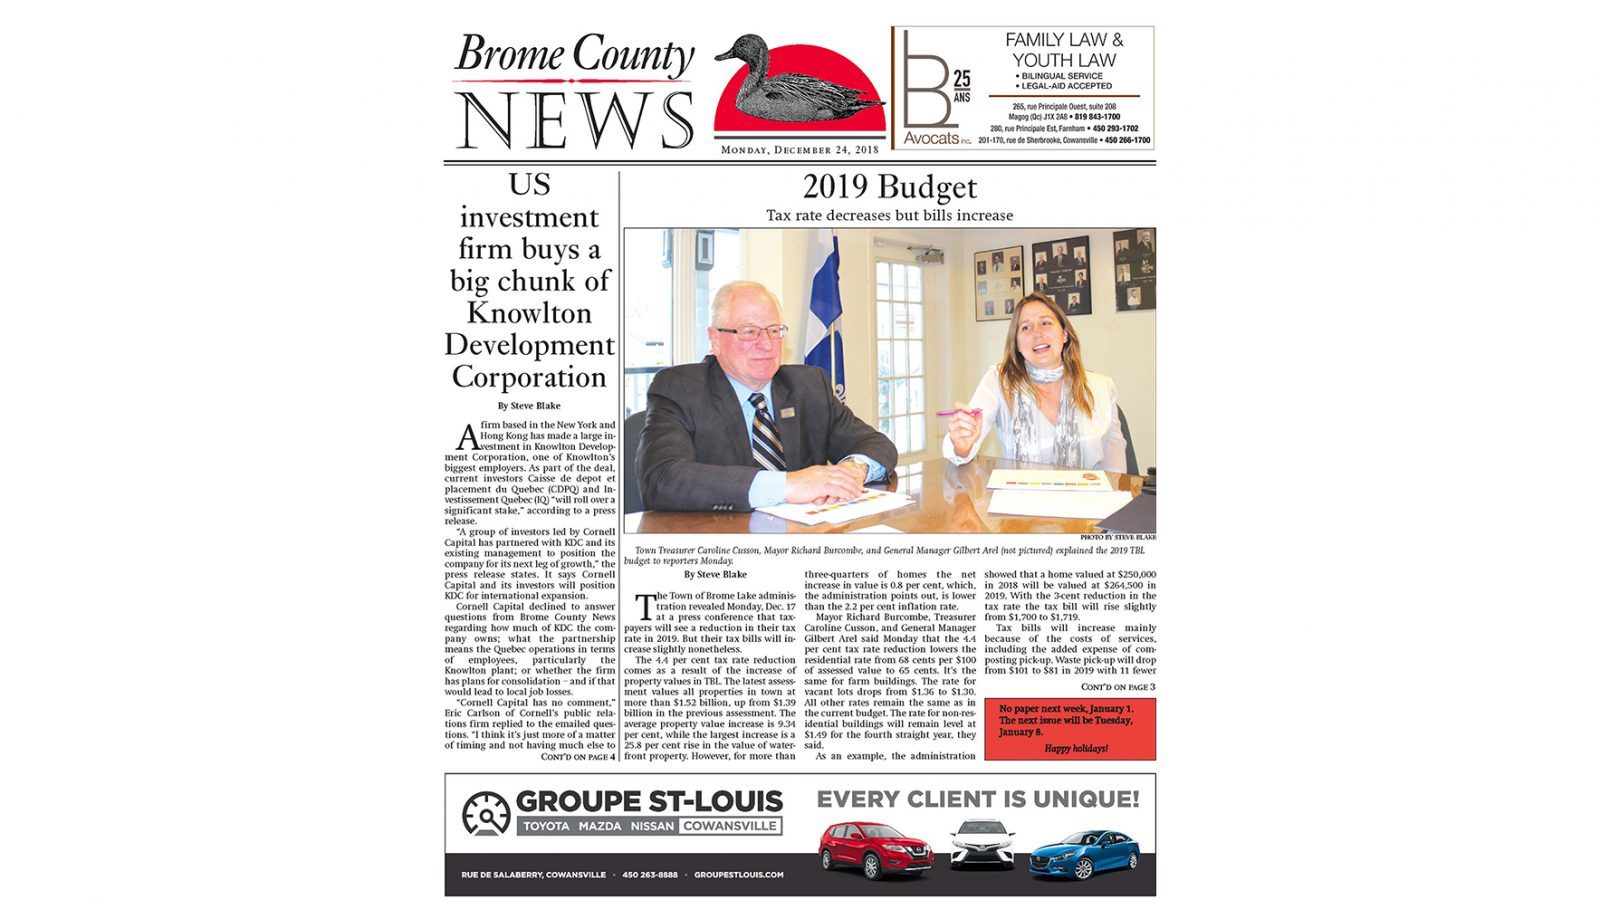 Brome County News – December 24, 2018 edition